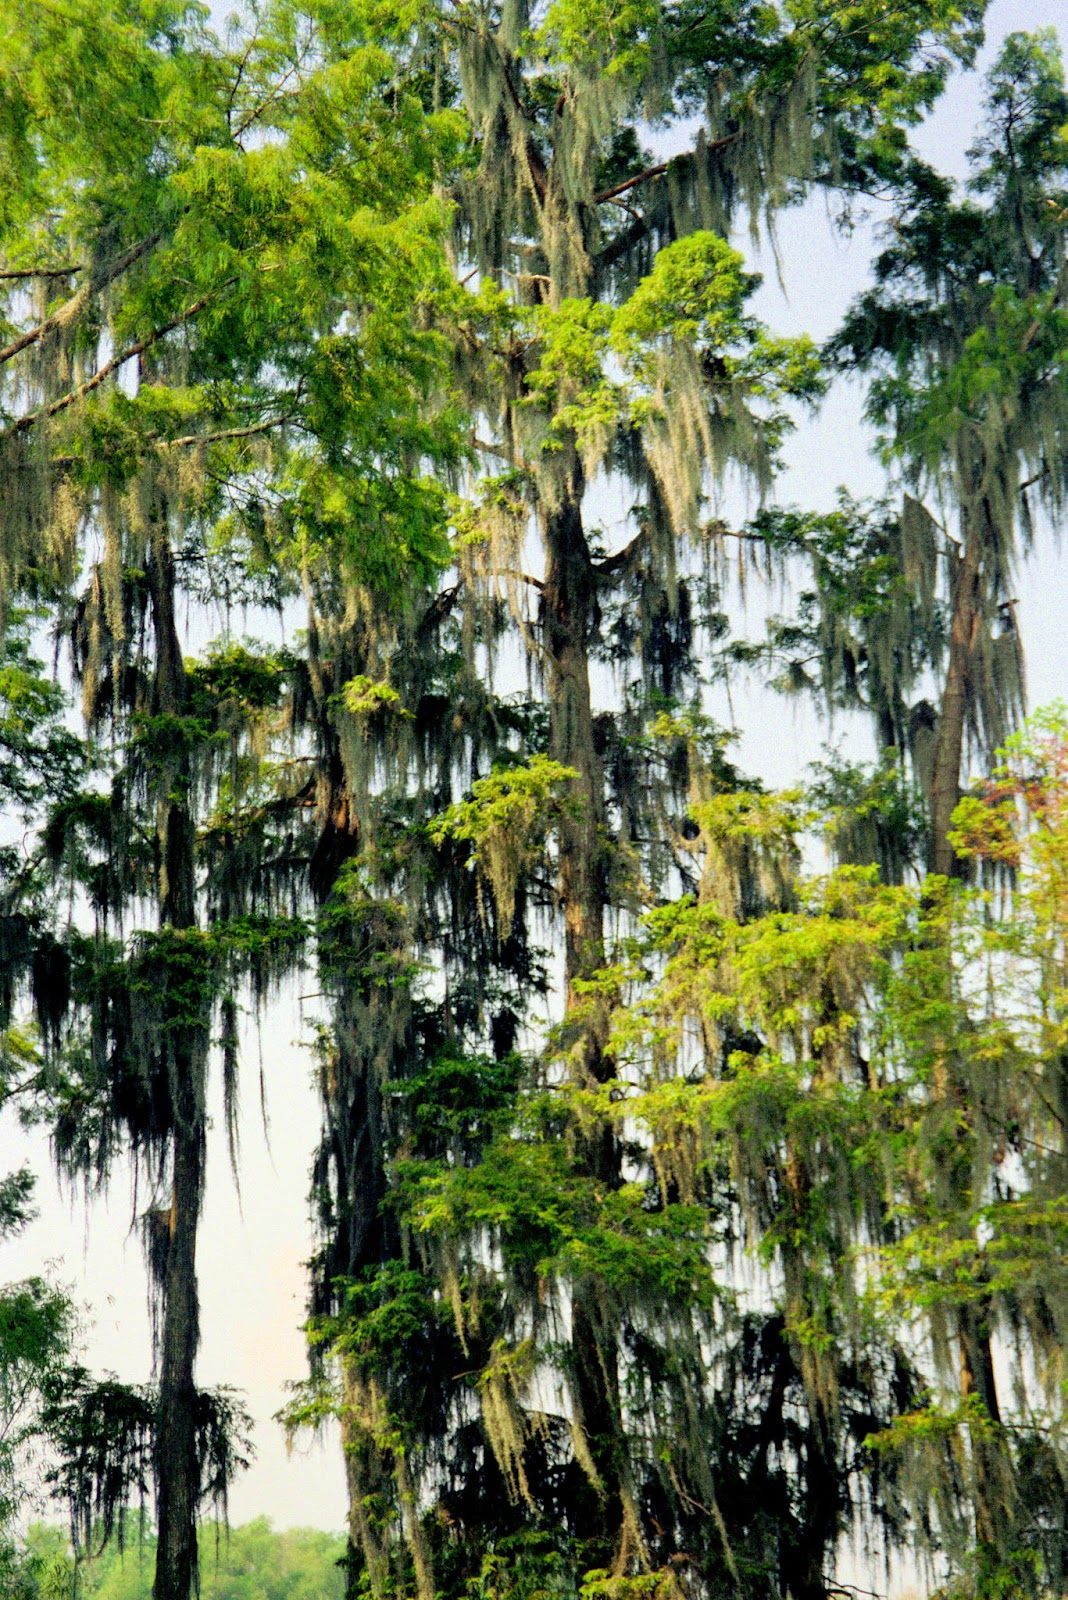 Trees with Draped Moss